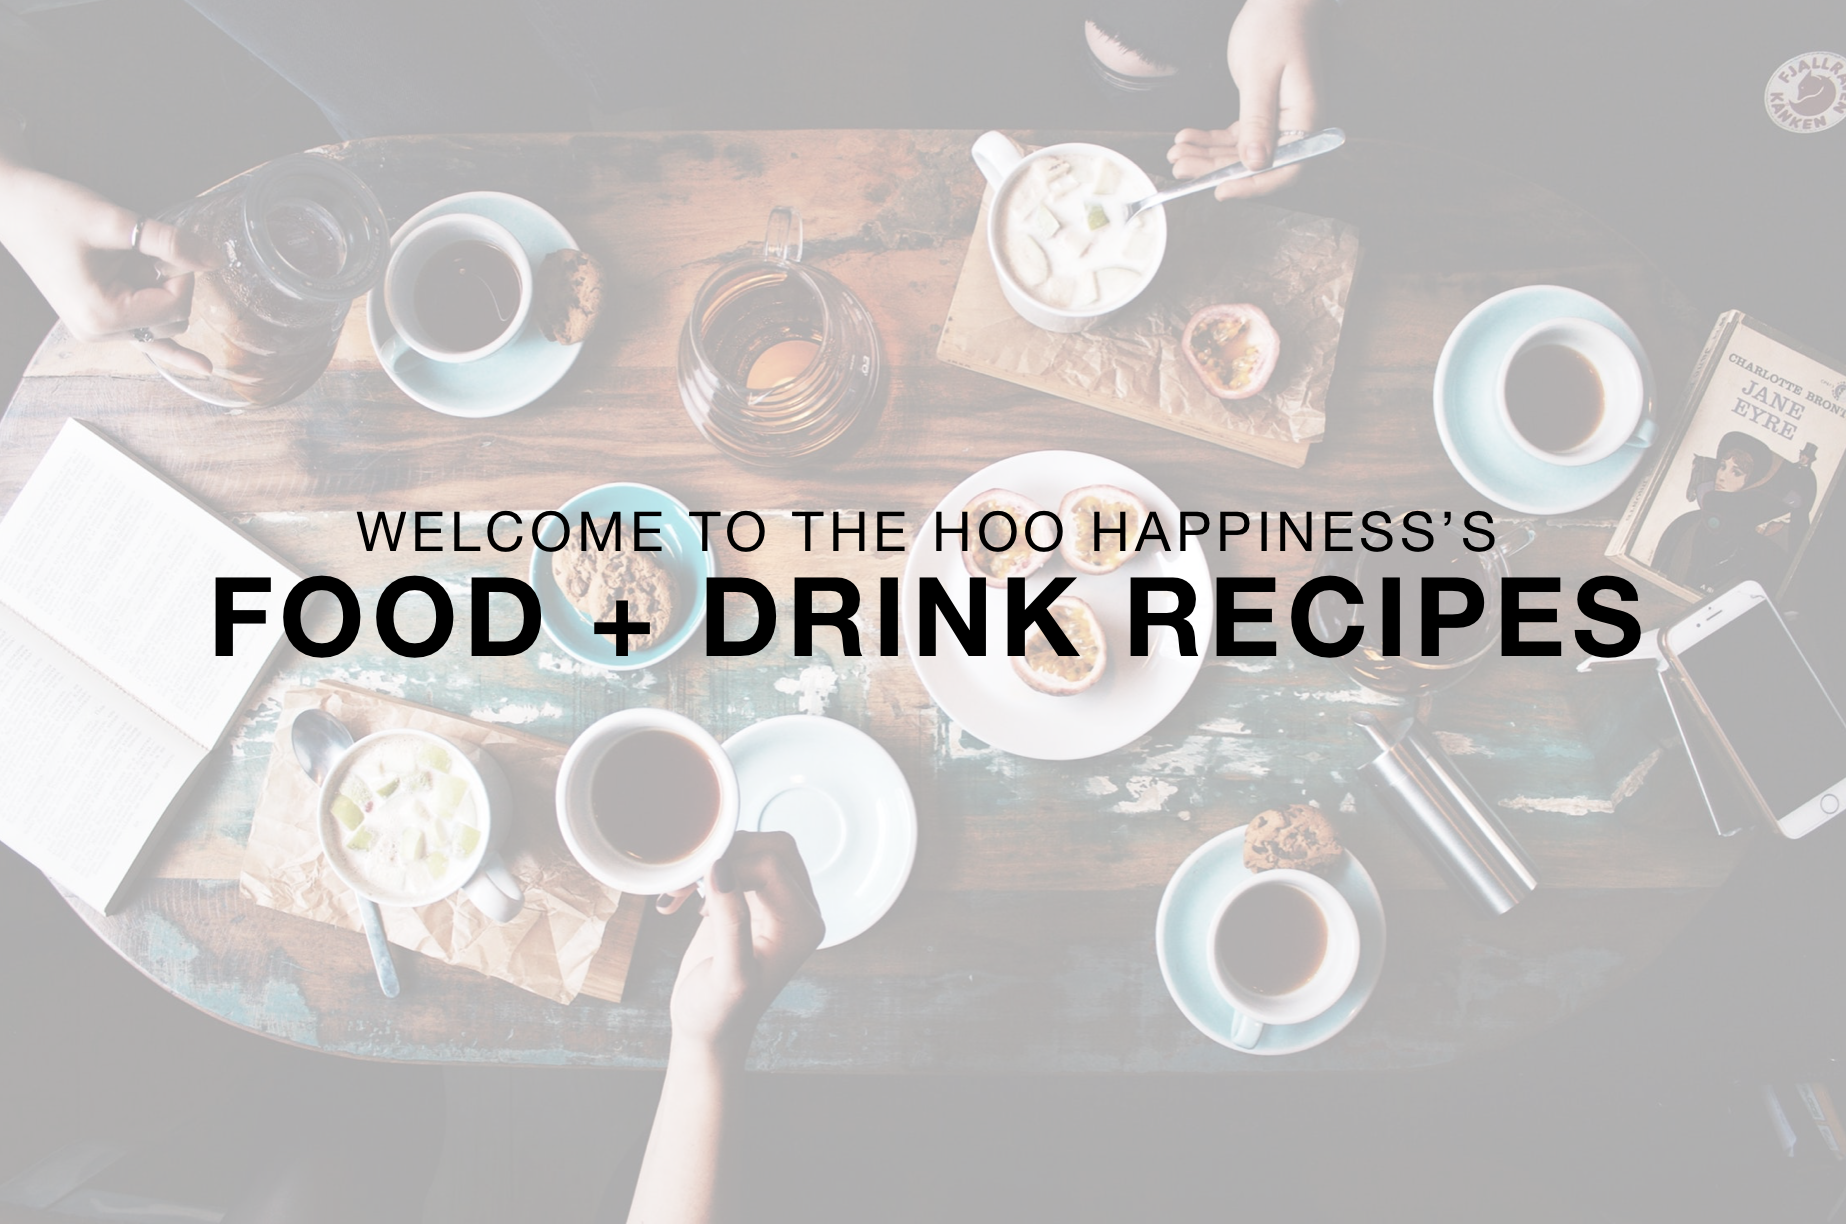 Welcome to HOO Happiness's Food + Drink Recipe Blog Page